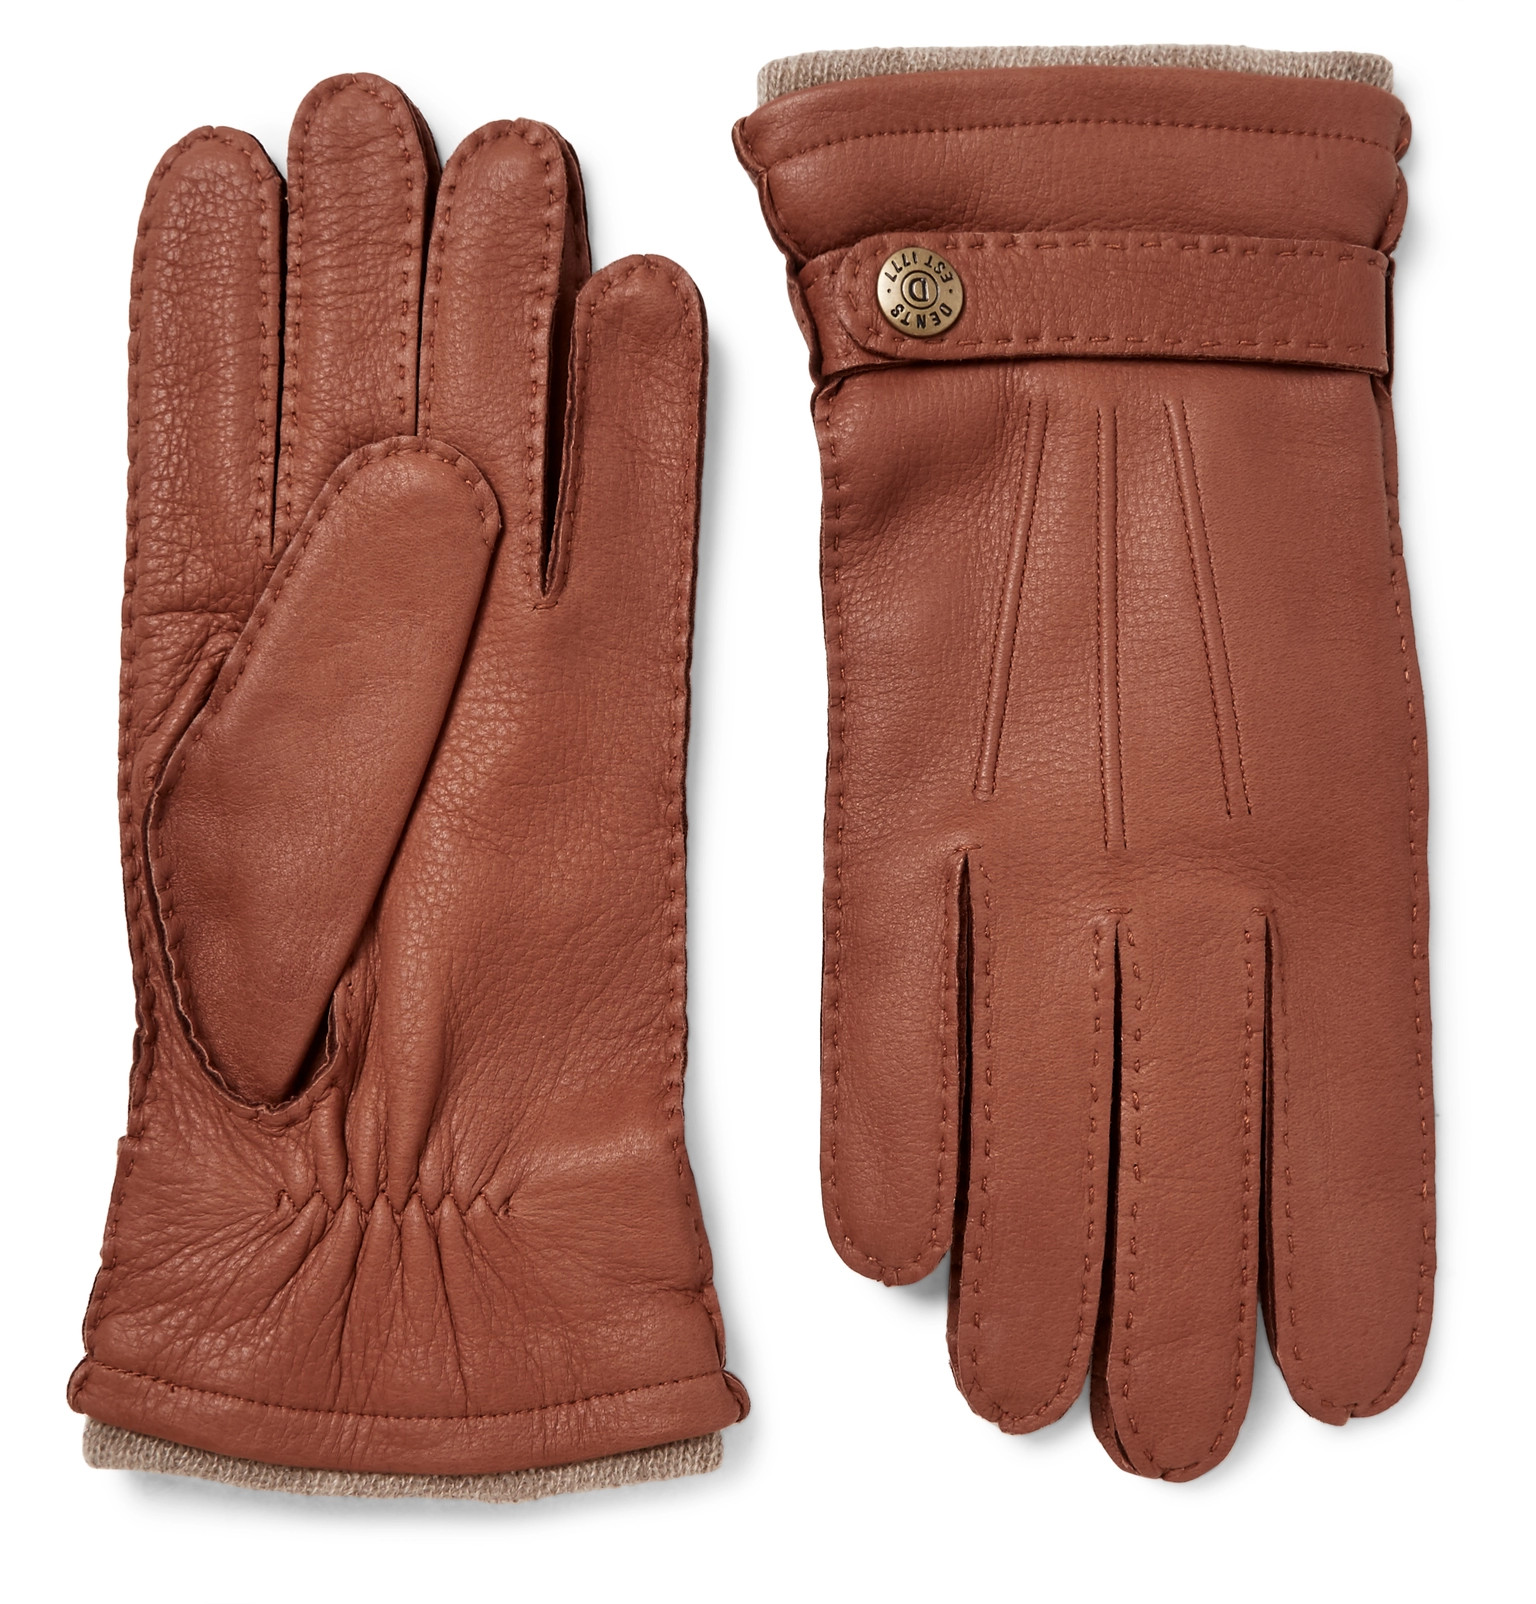 Prada mens leather gloves - Dents Gloucester Cashmere Lined Full Grain Leather Gloves